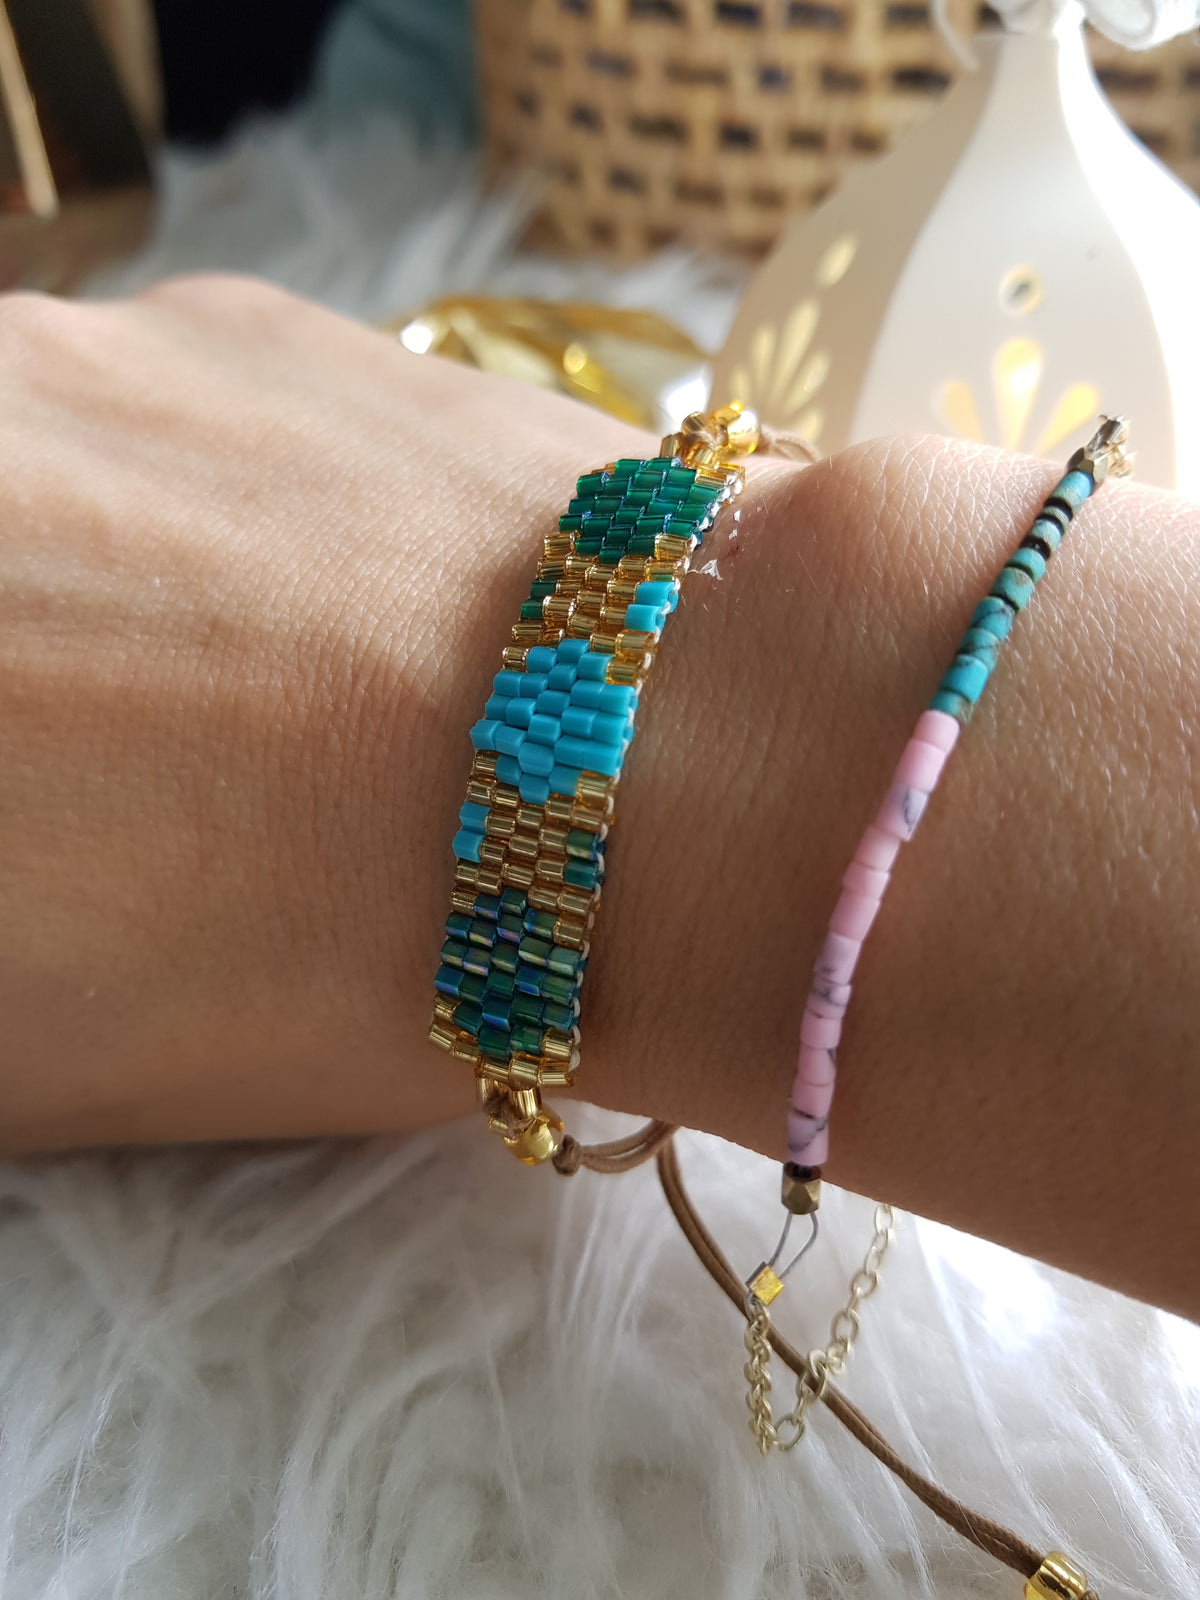 Finn Beaded Bracelet (Colour Combi:Blue, green, Gold)